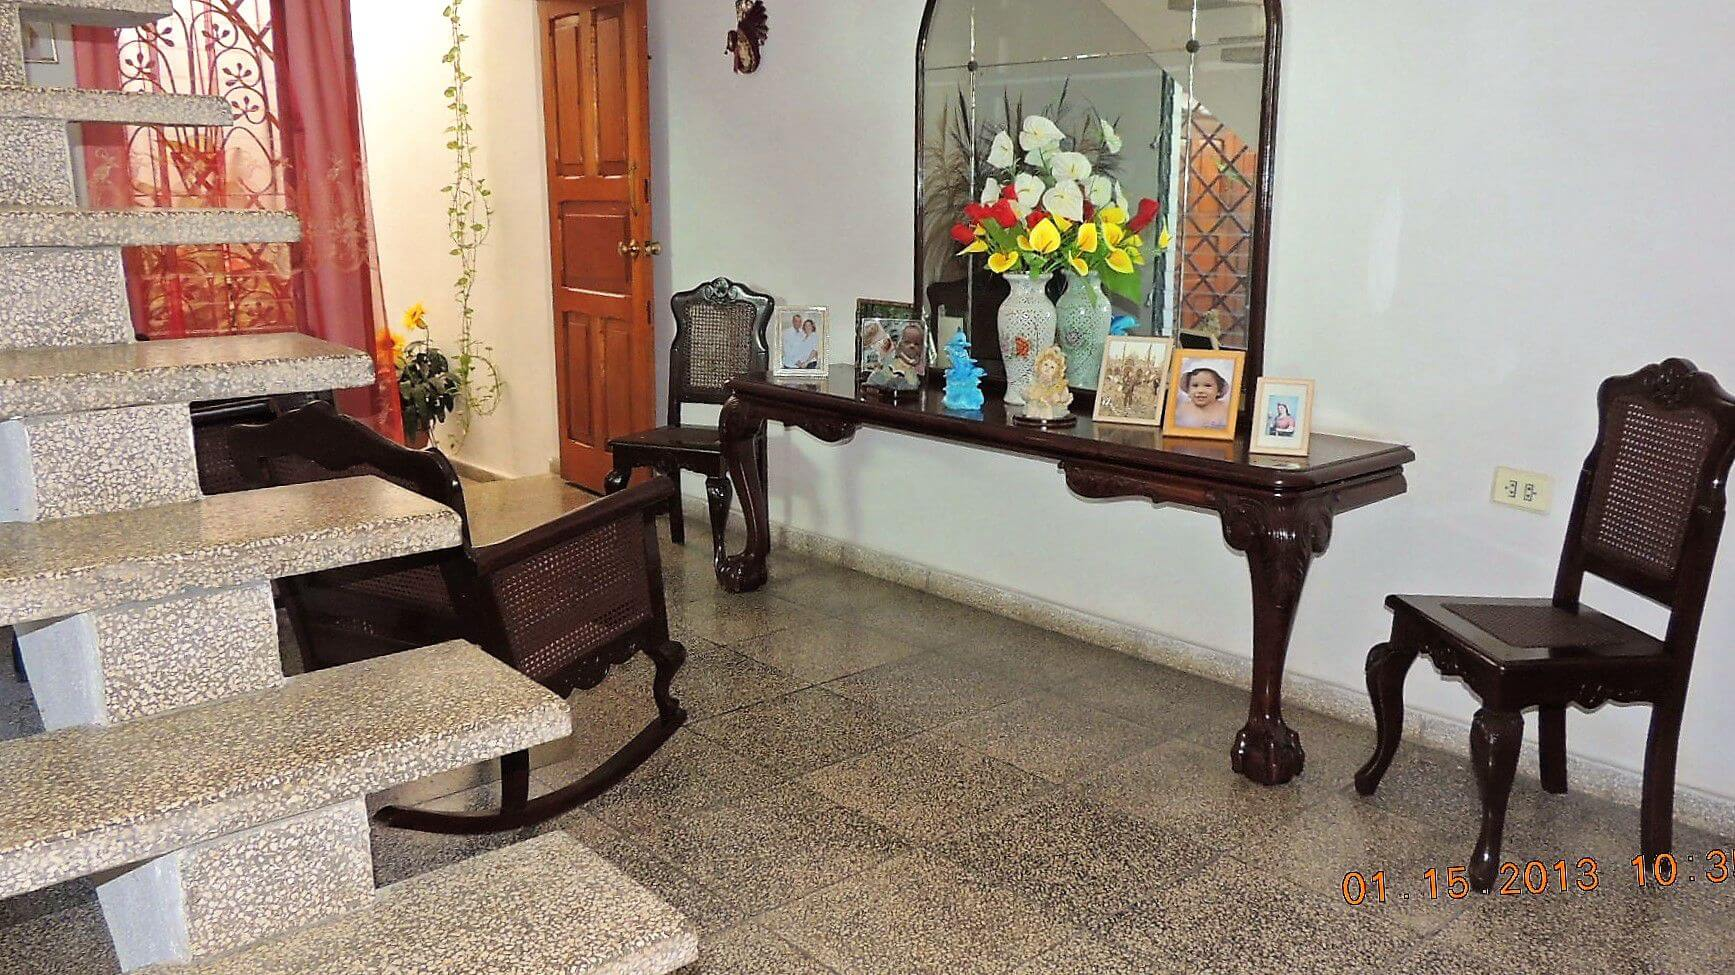 Hostal sr. Wenceslao